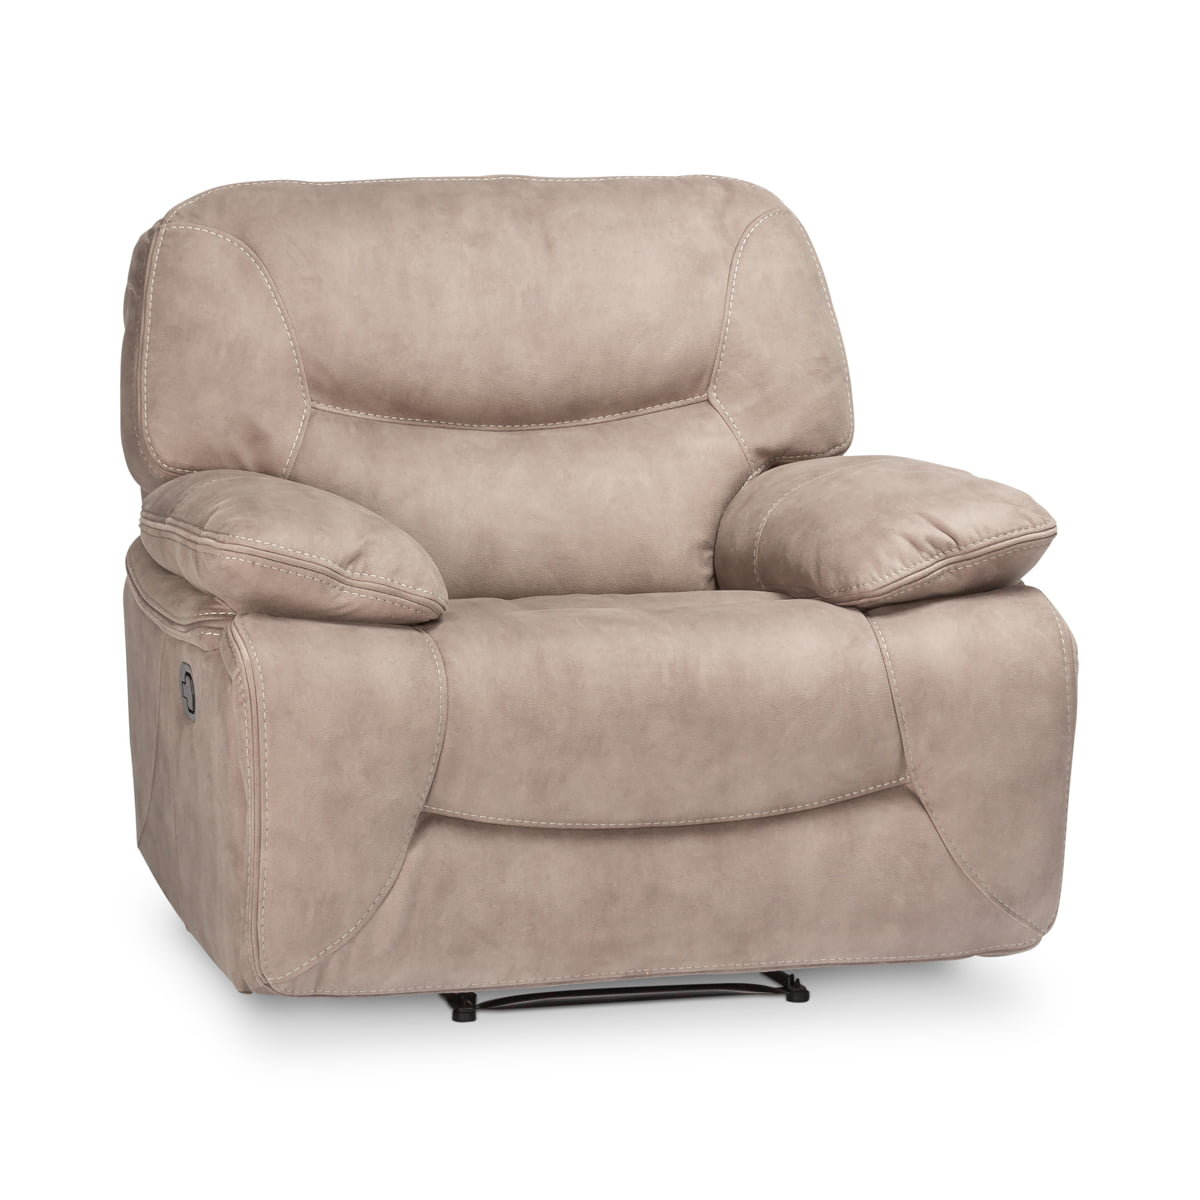 Dynamo Sultry Grey Armchair Recliner